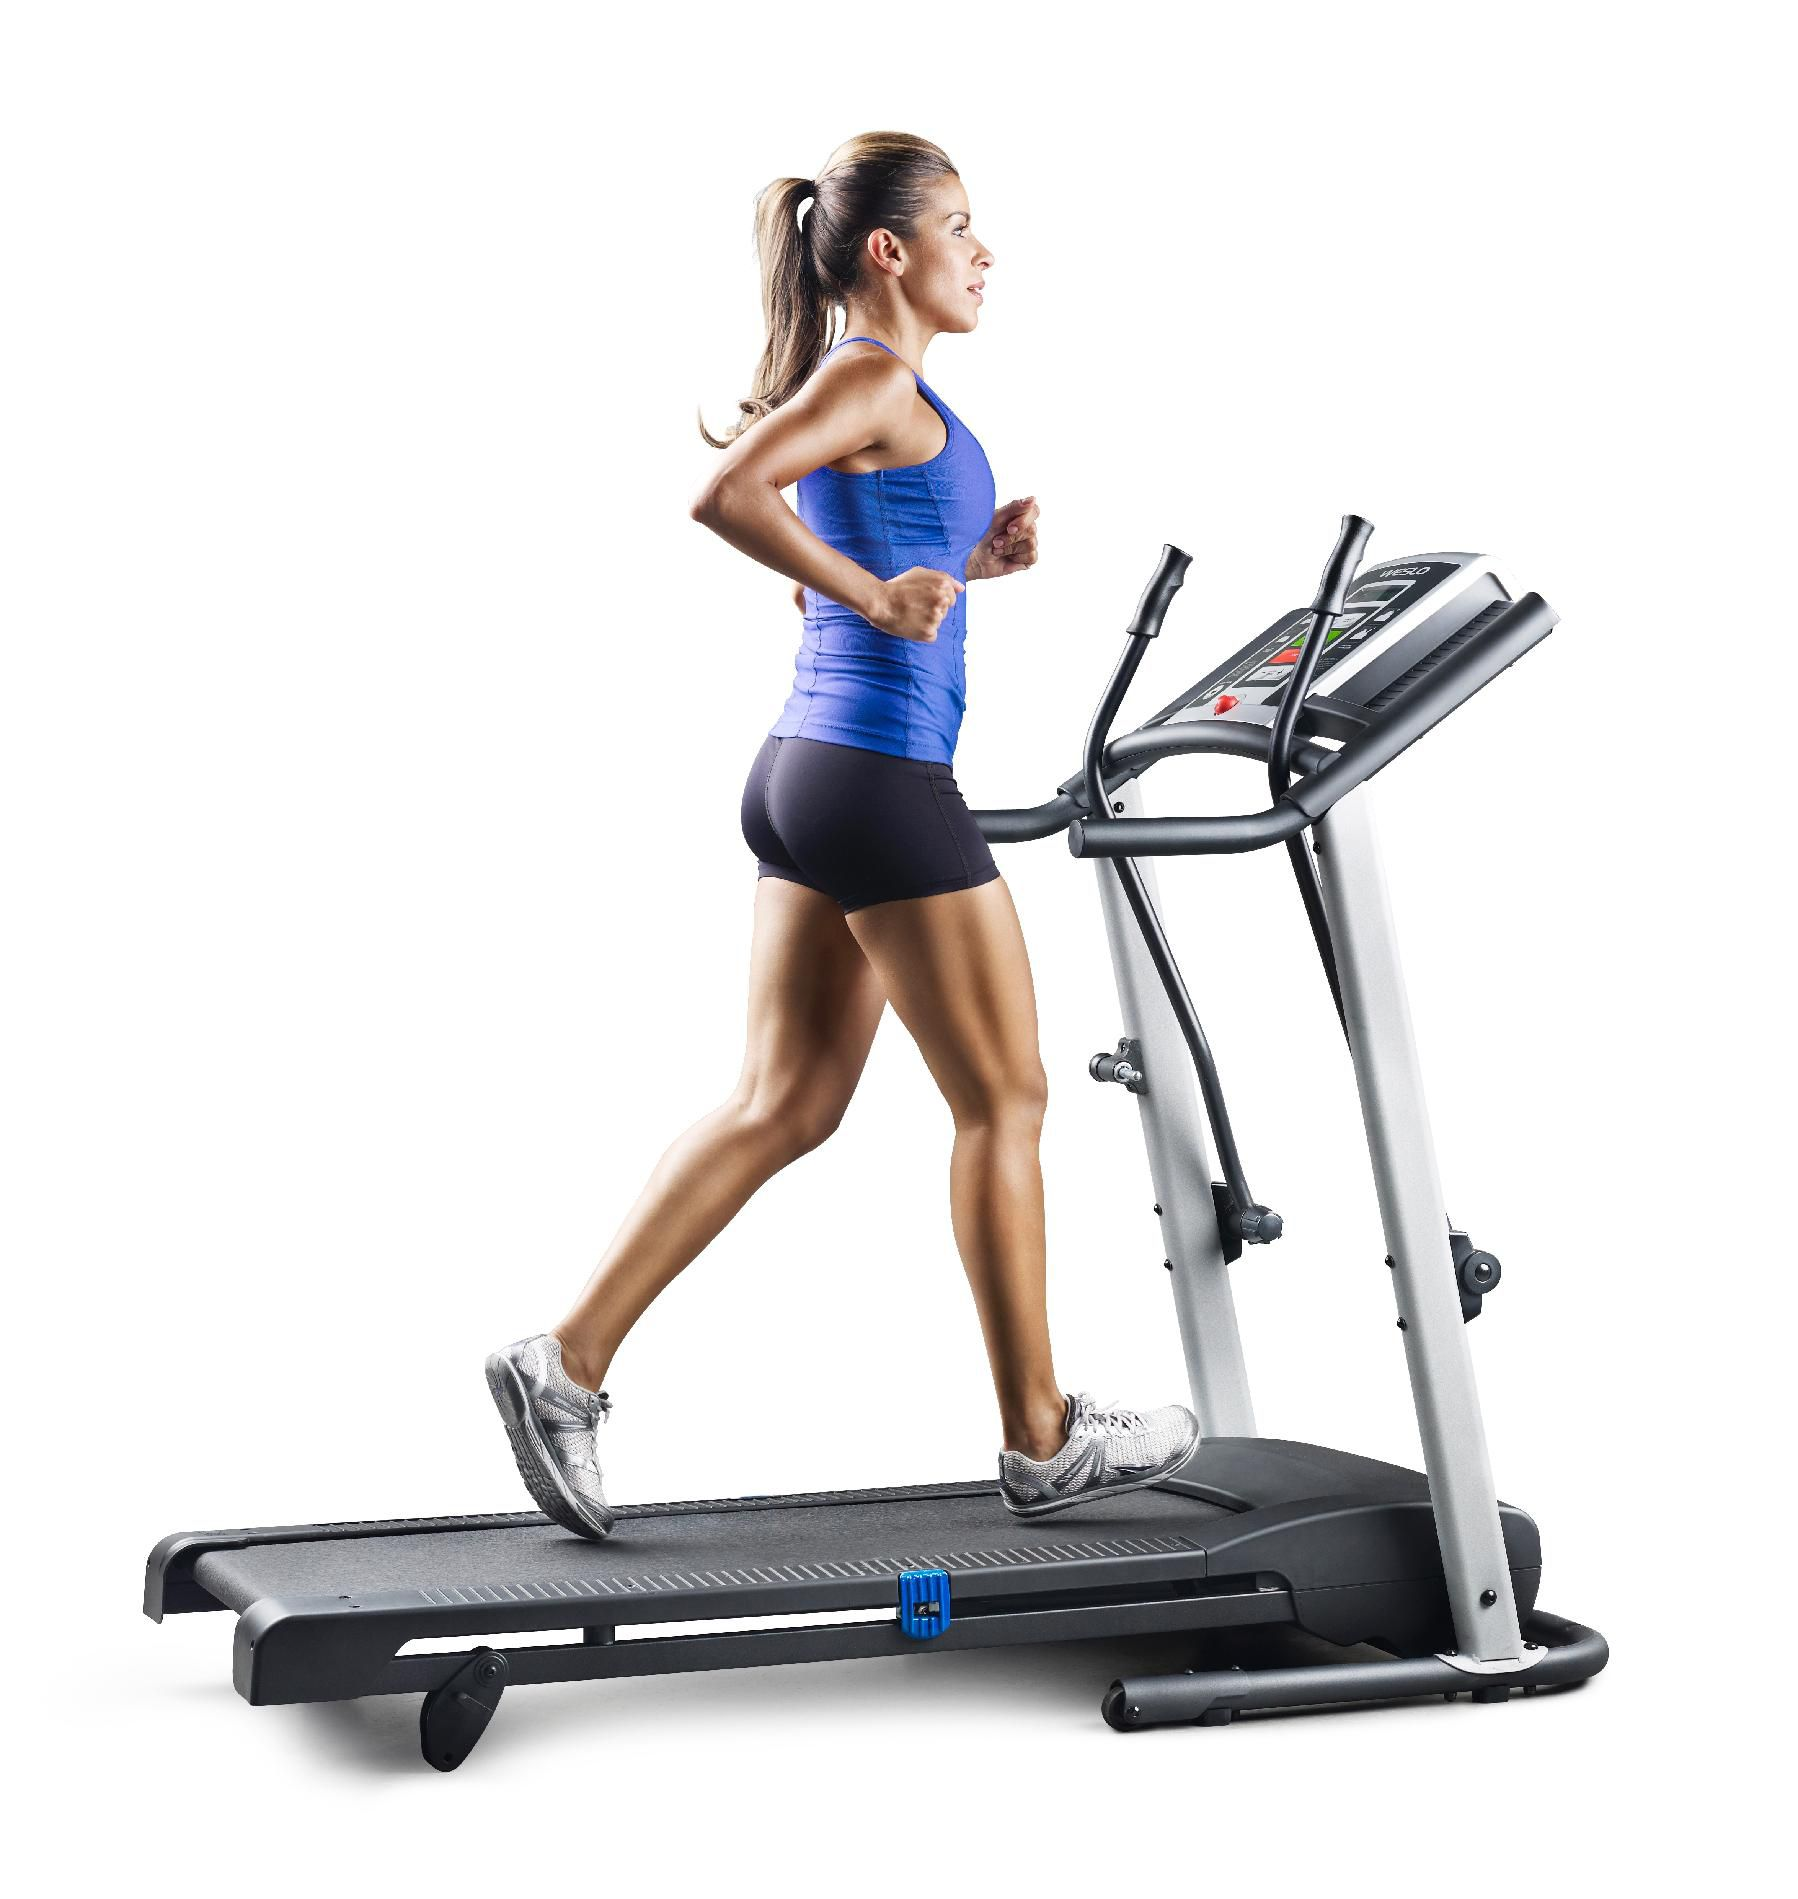 Weslo 5.2 Crosswalk Treadmill